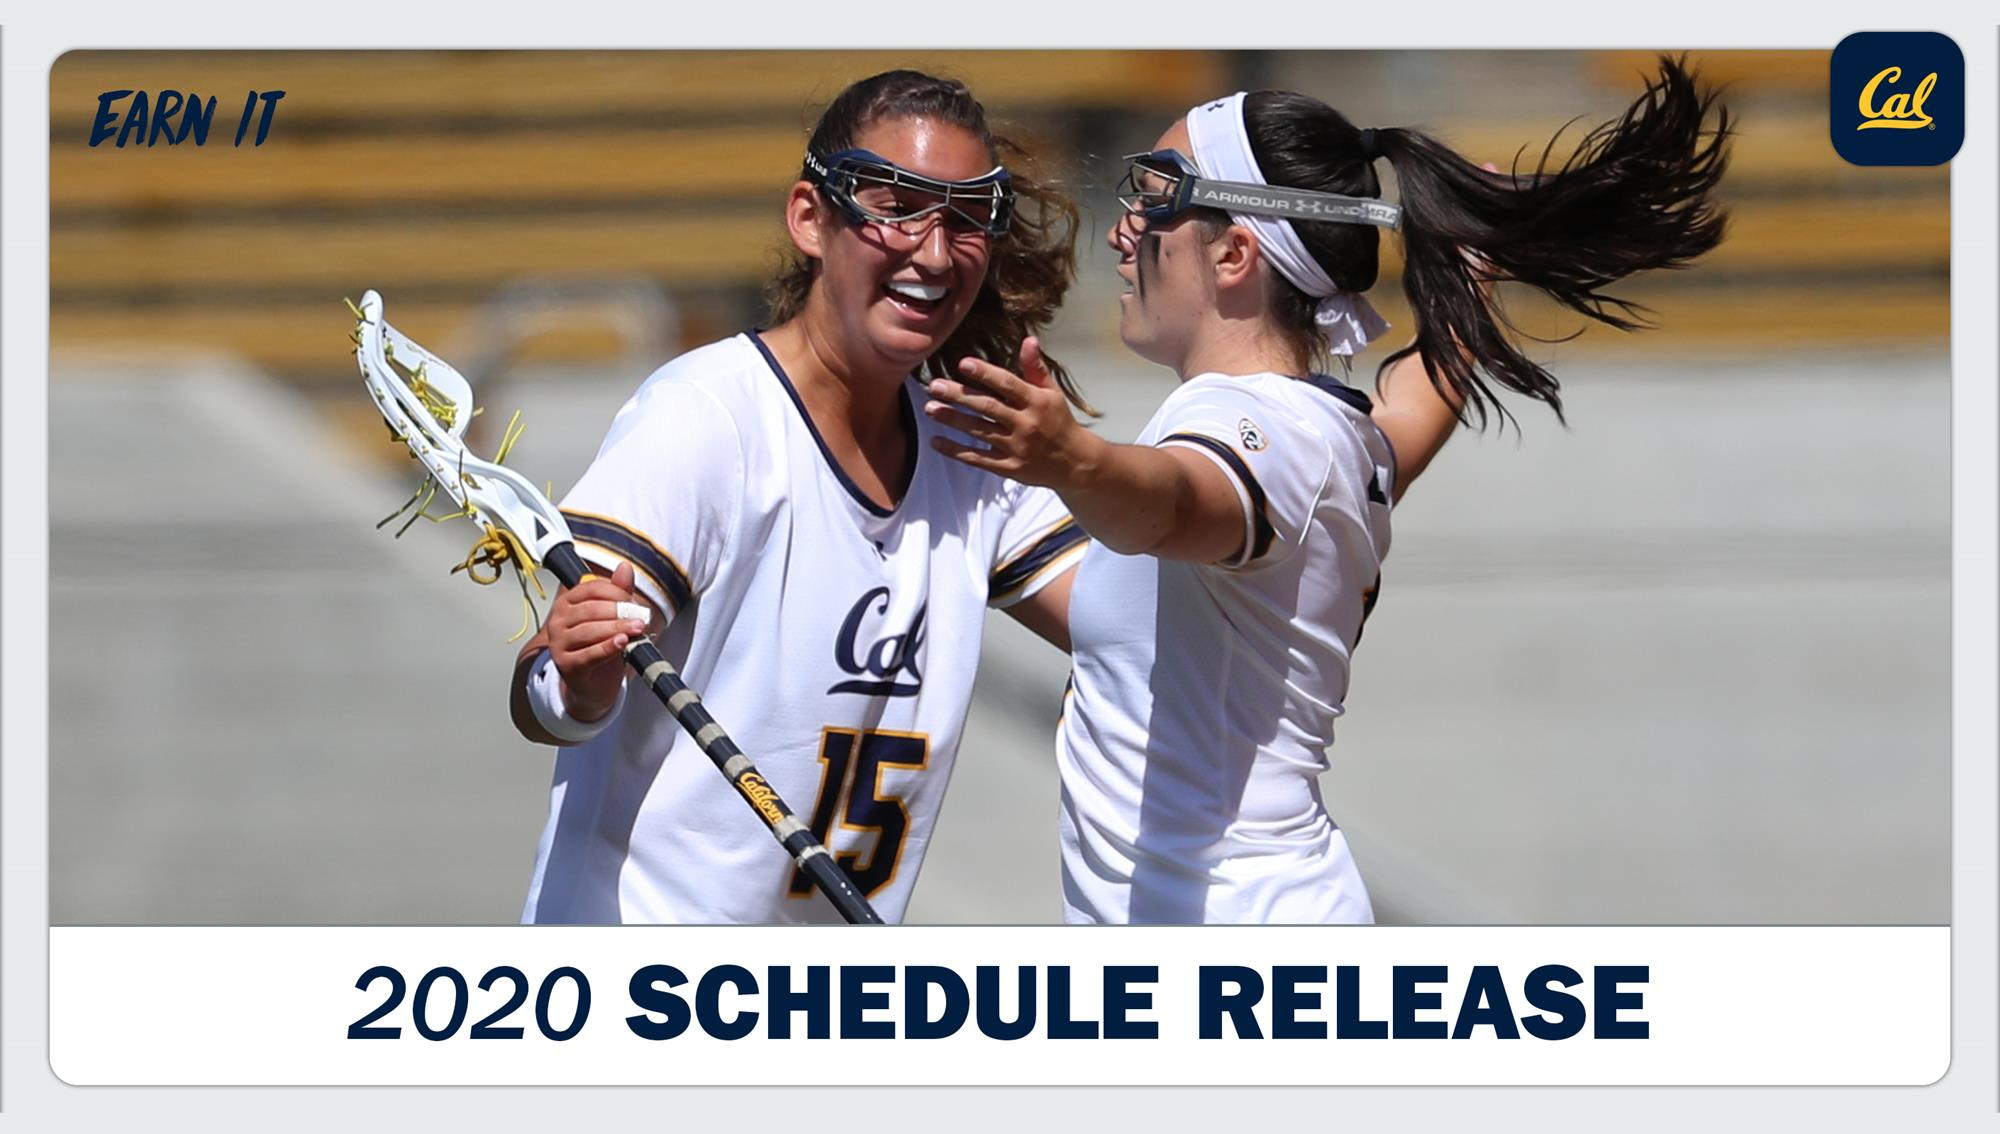 Cal Announces 2020 Schedule University Of California Golden Bears Athletics